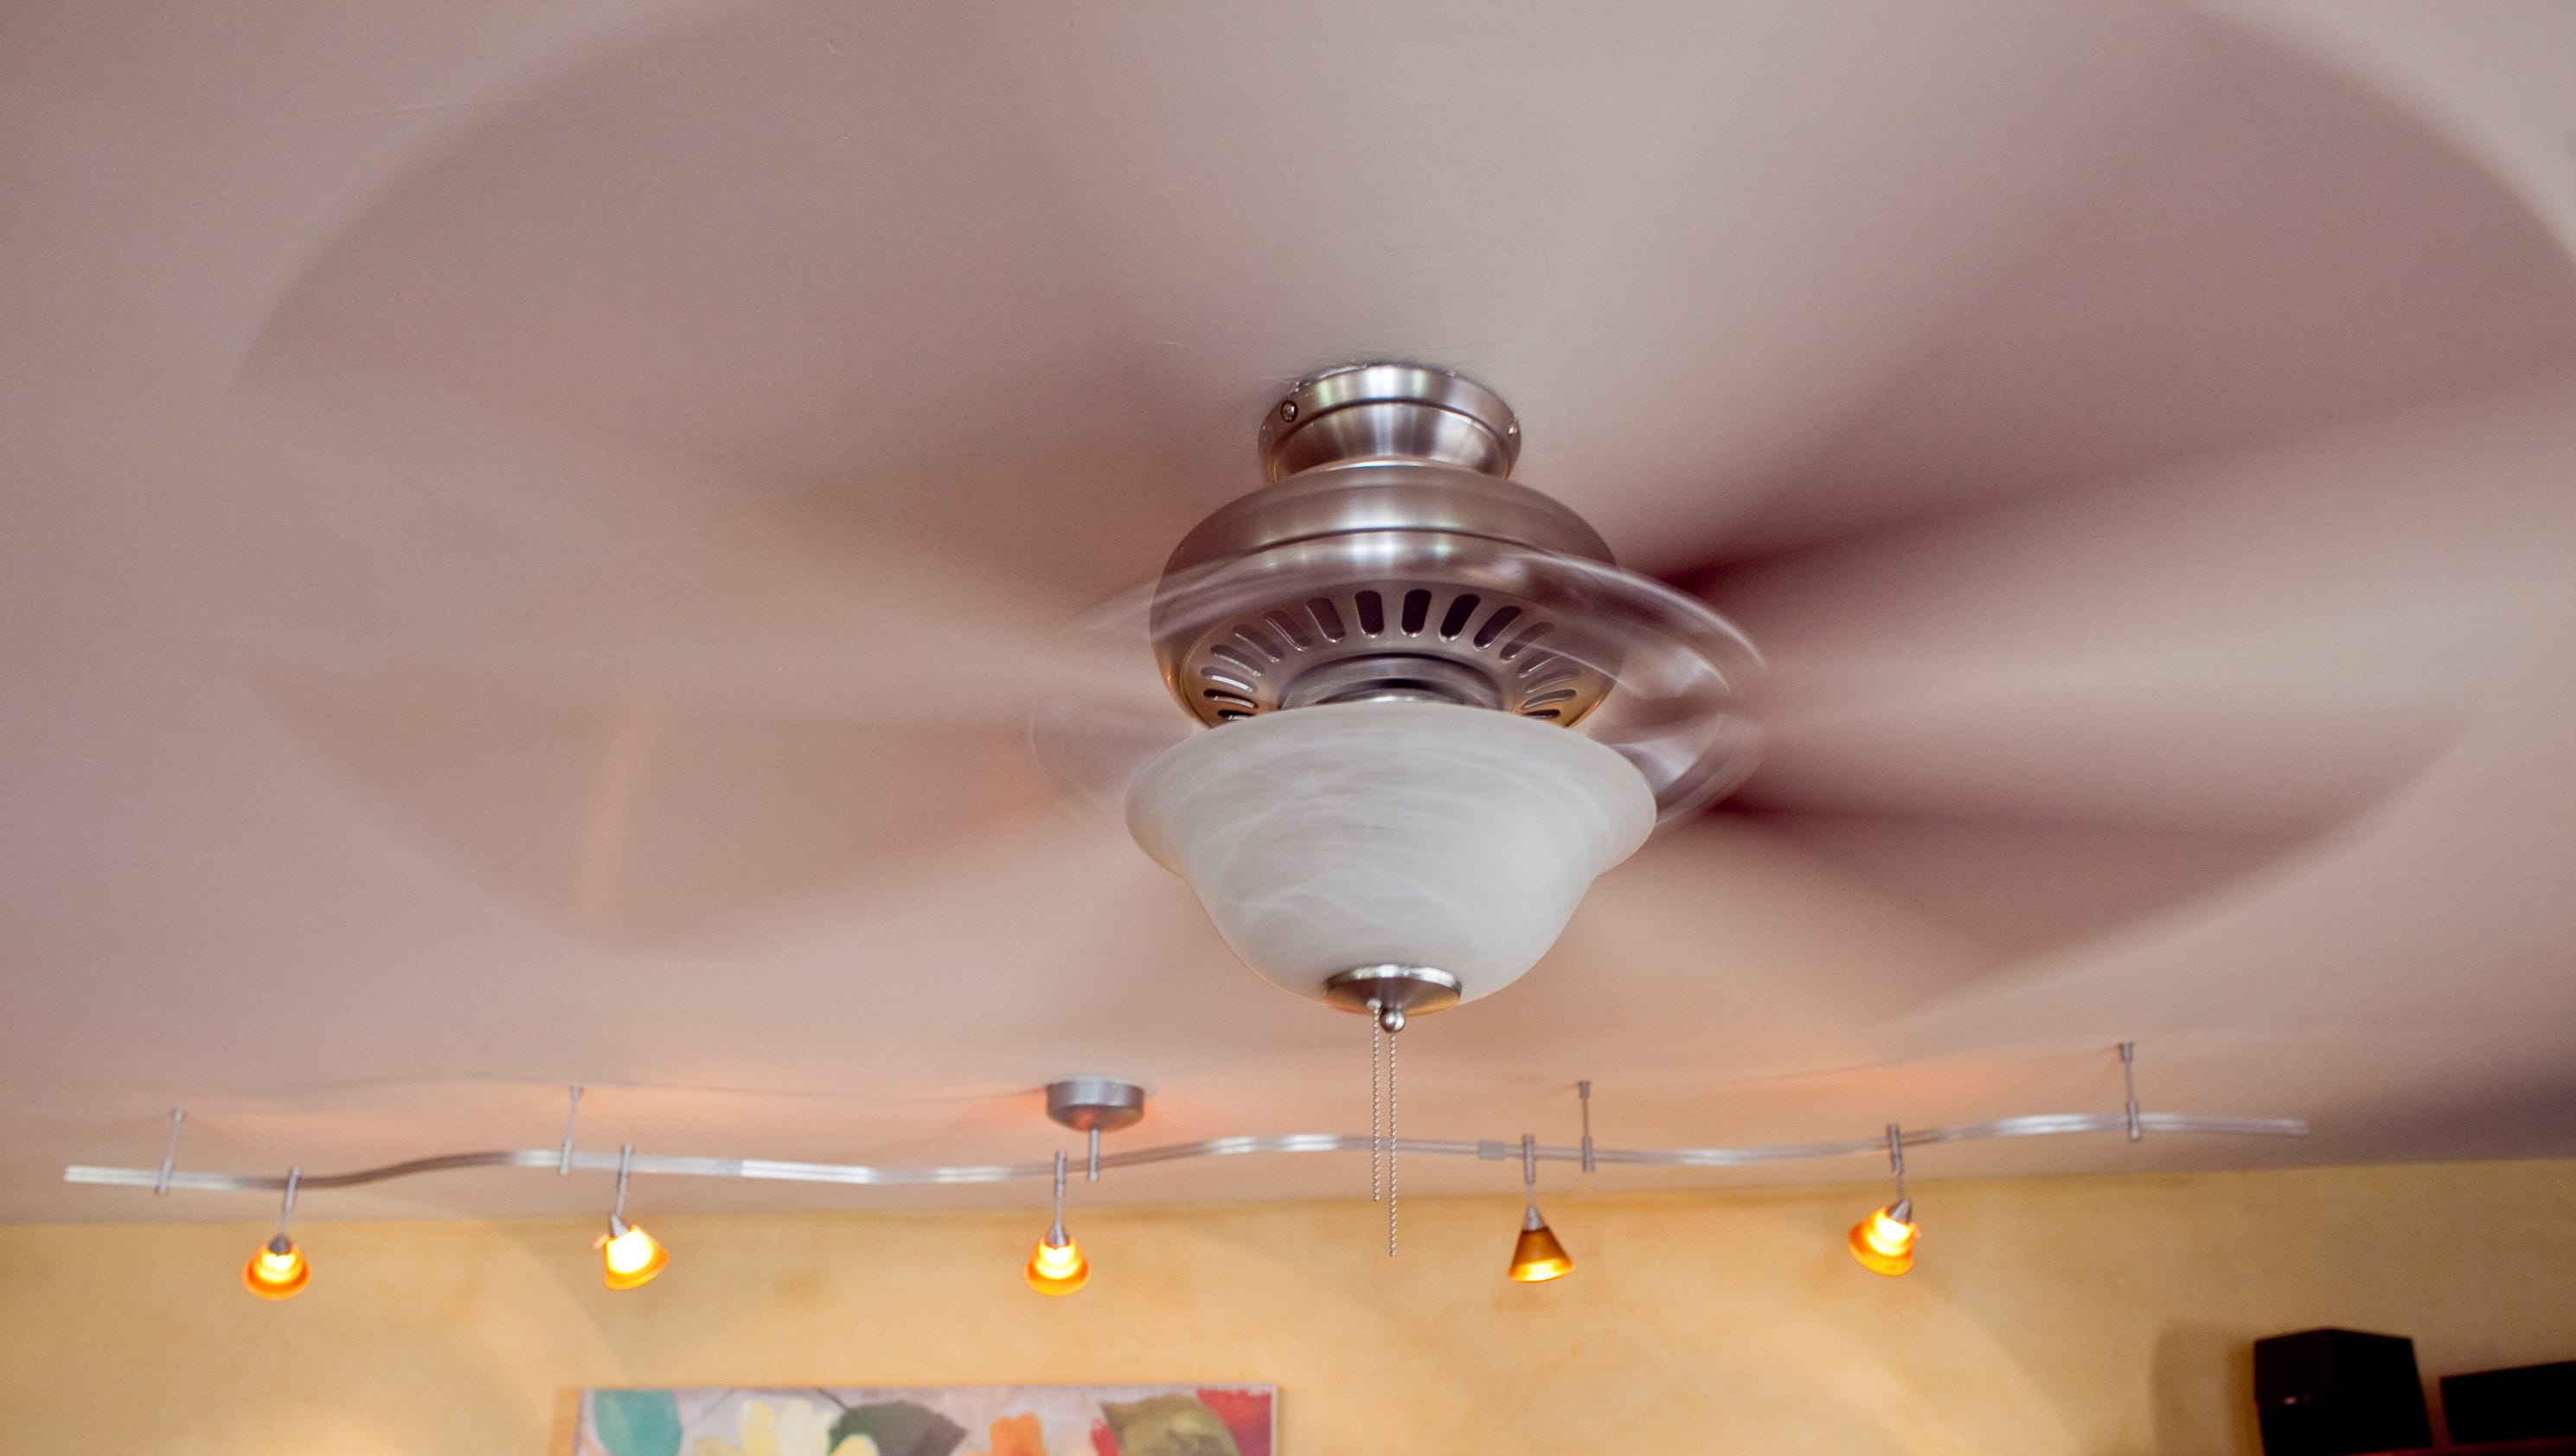 Ceiling fans cool people not rooms other energy tips